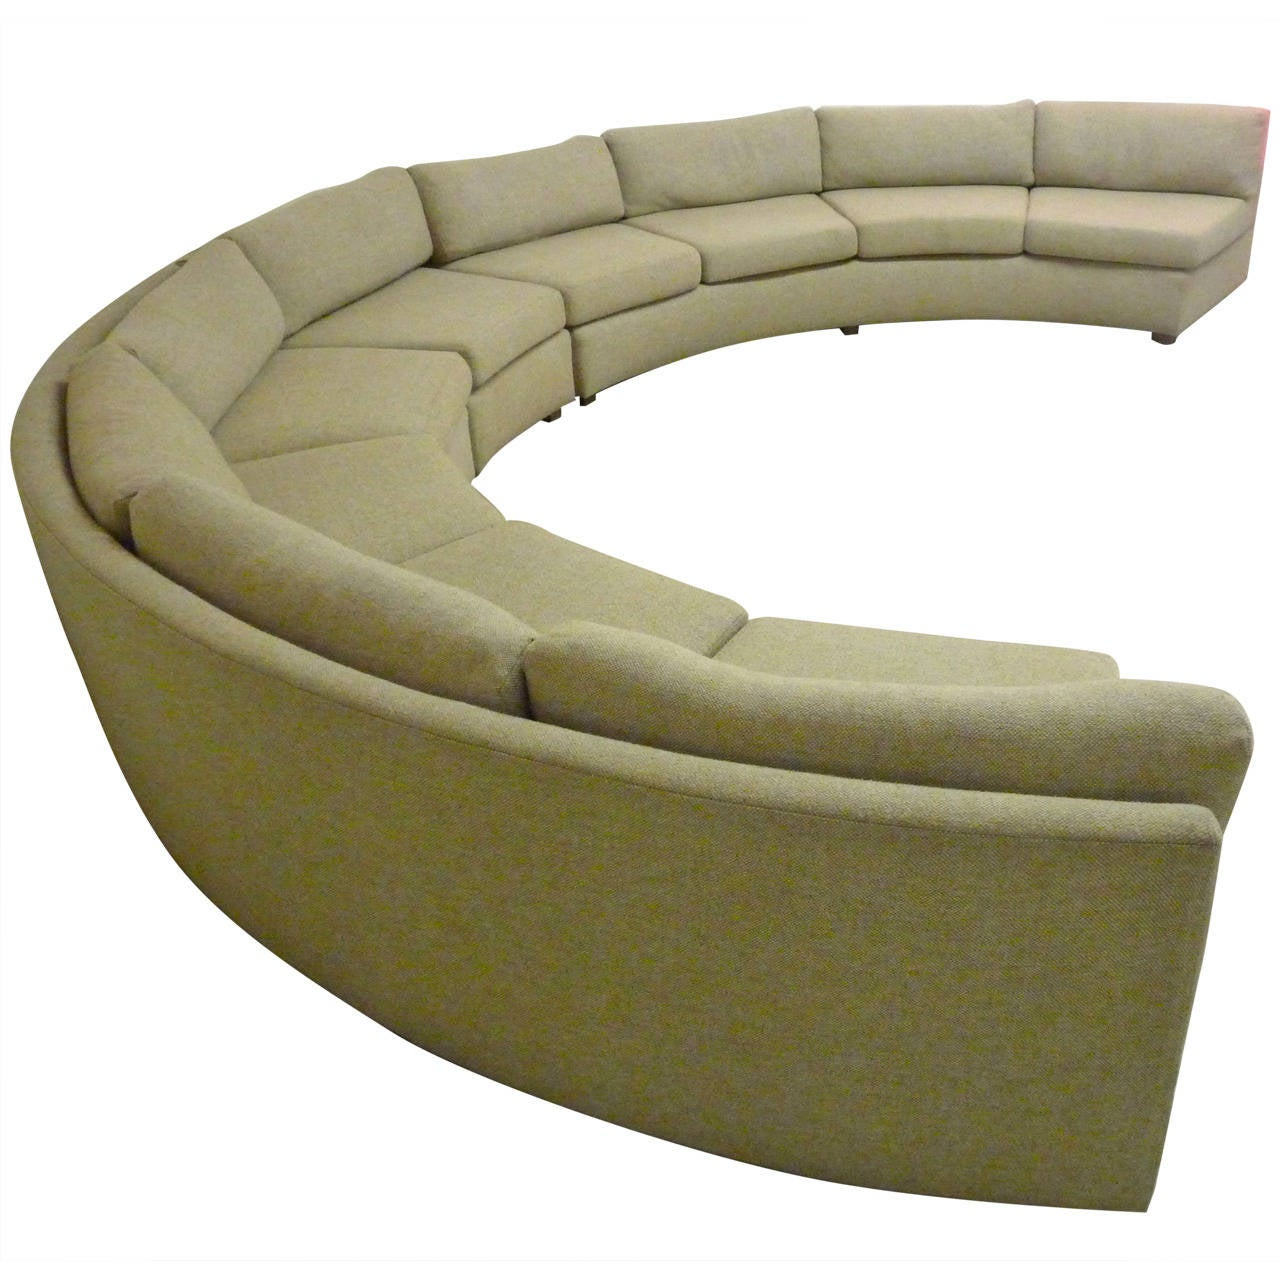 Large, Curved Milo Baughman Sectional Sofa For Sale